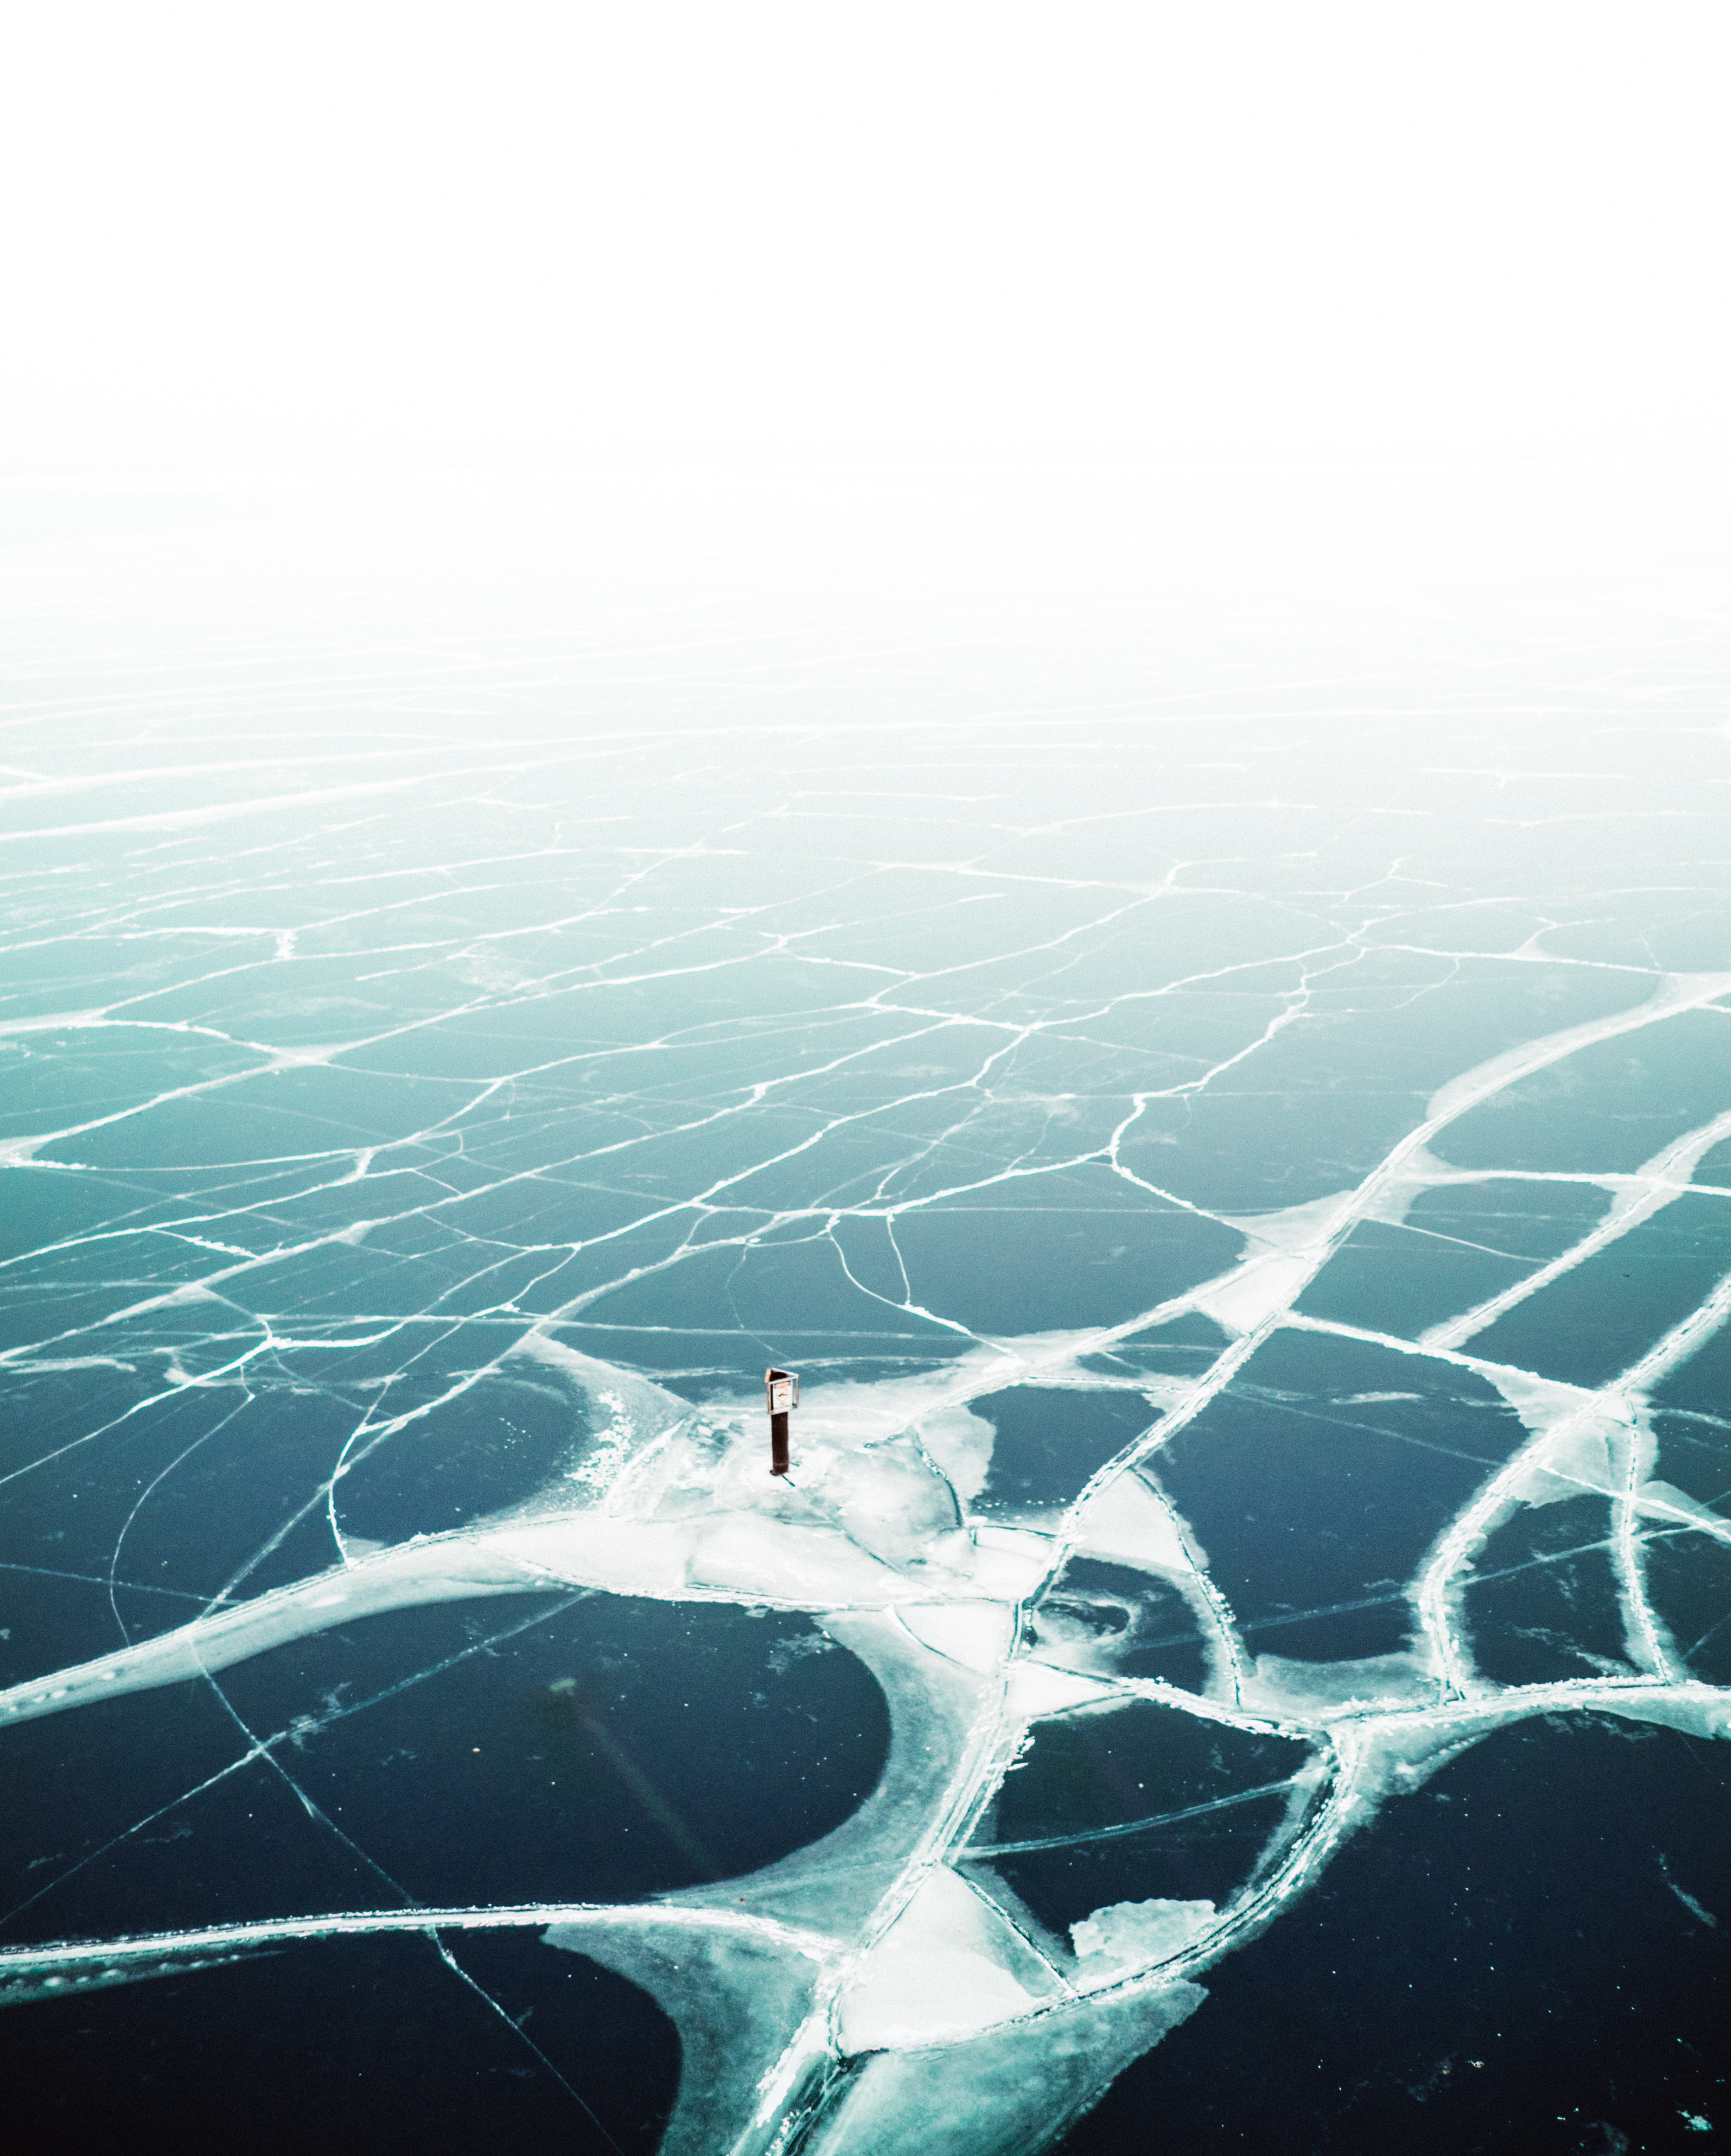 The ice on Lake Michigan cracks, creating a contrast of dark and light